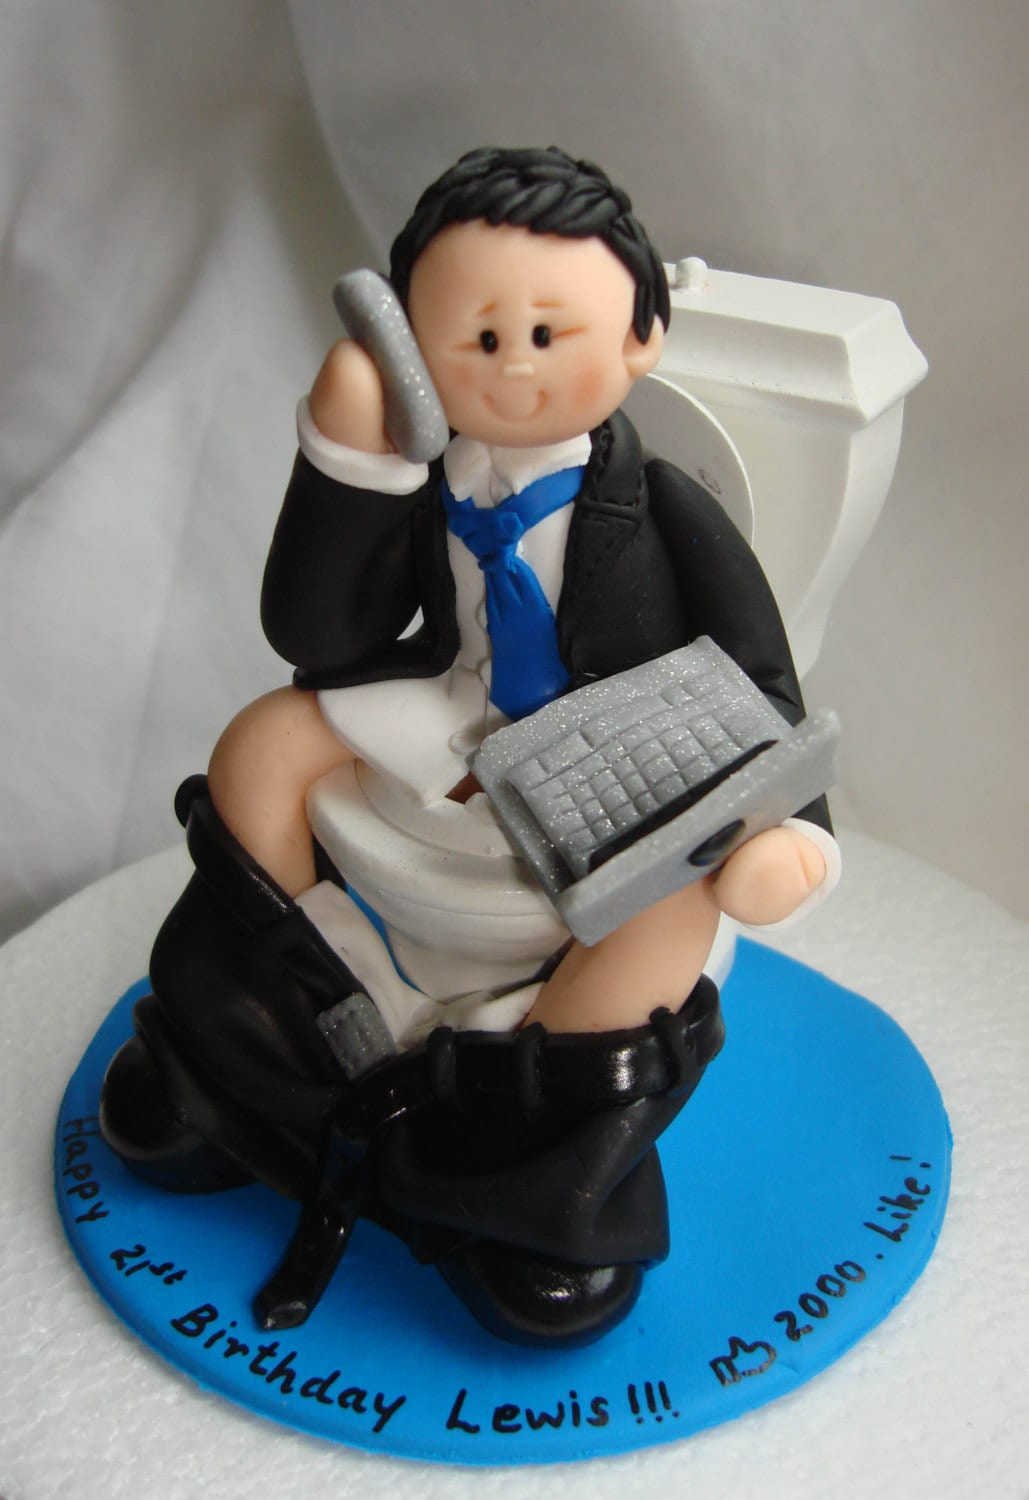 Internet Addict Funny Birthday Cake Topper Man Boy glued to